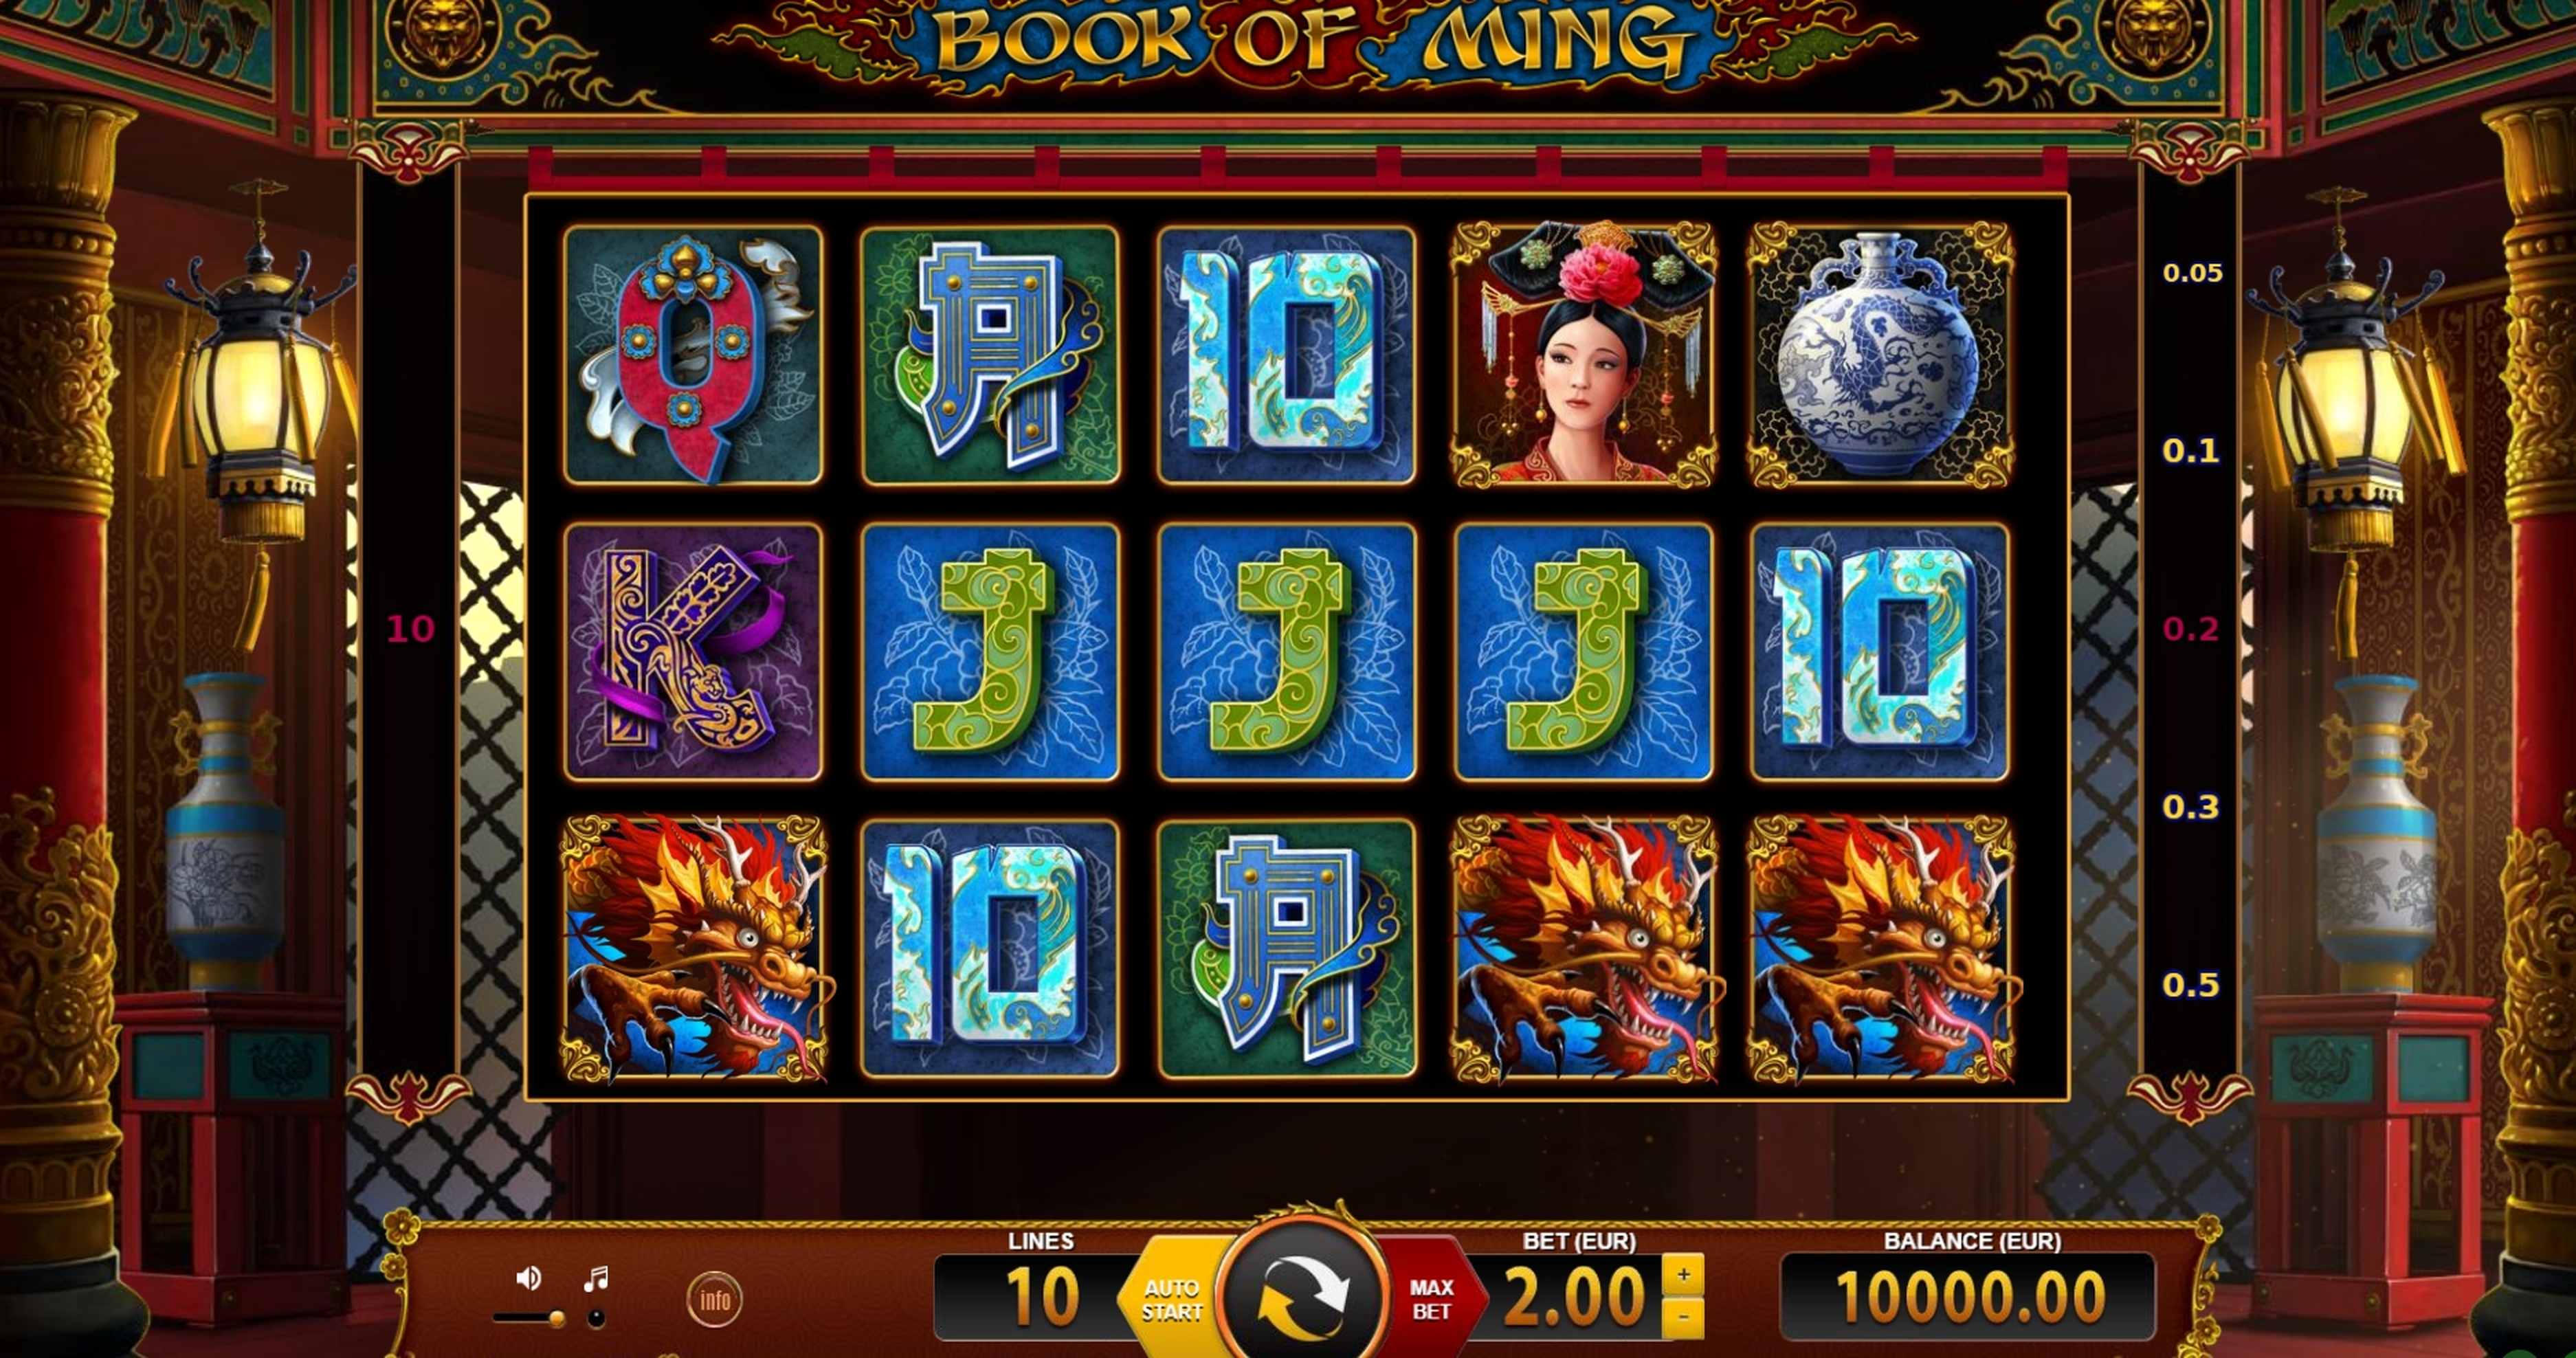 Reels in Book of Ming Slot Game by BF games